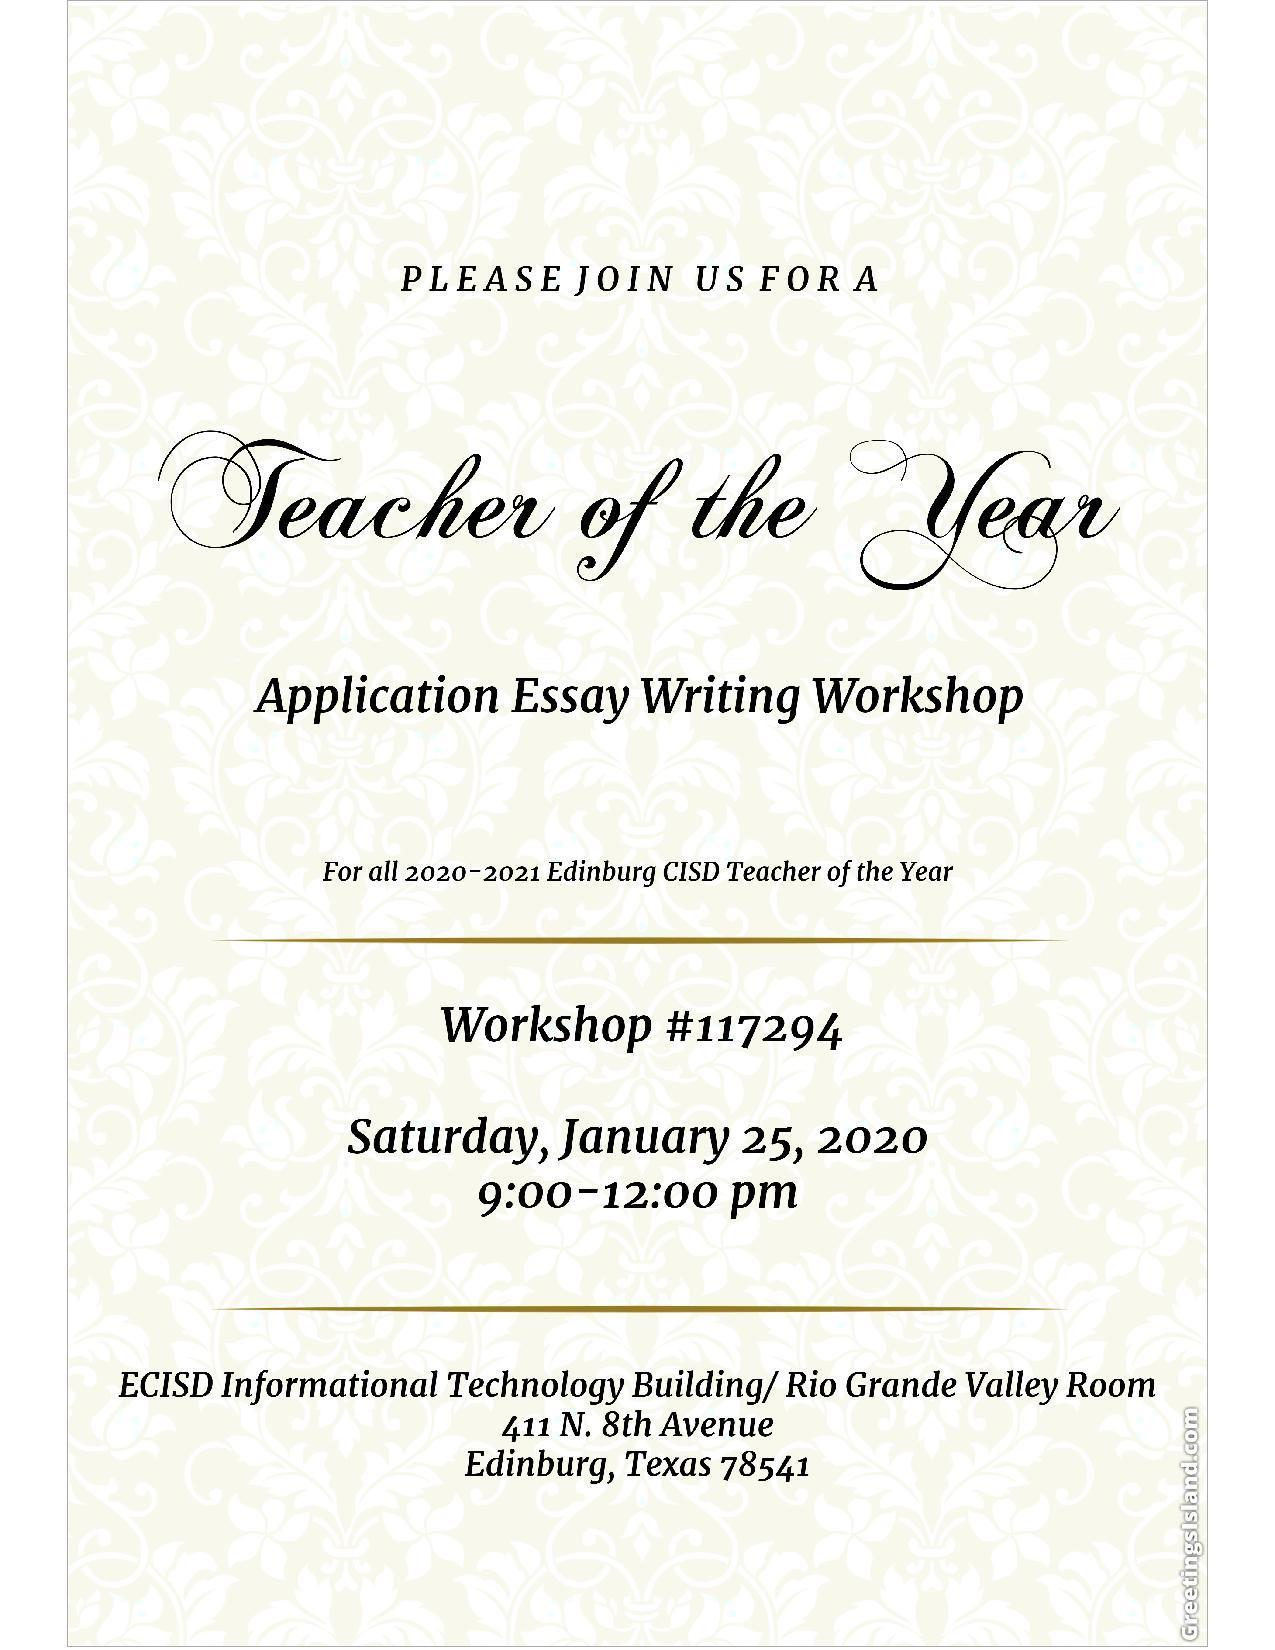 Teacher of the Year Writing Brunch Invitation